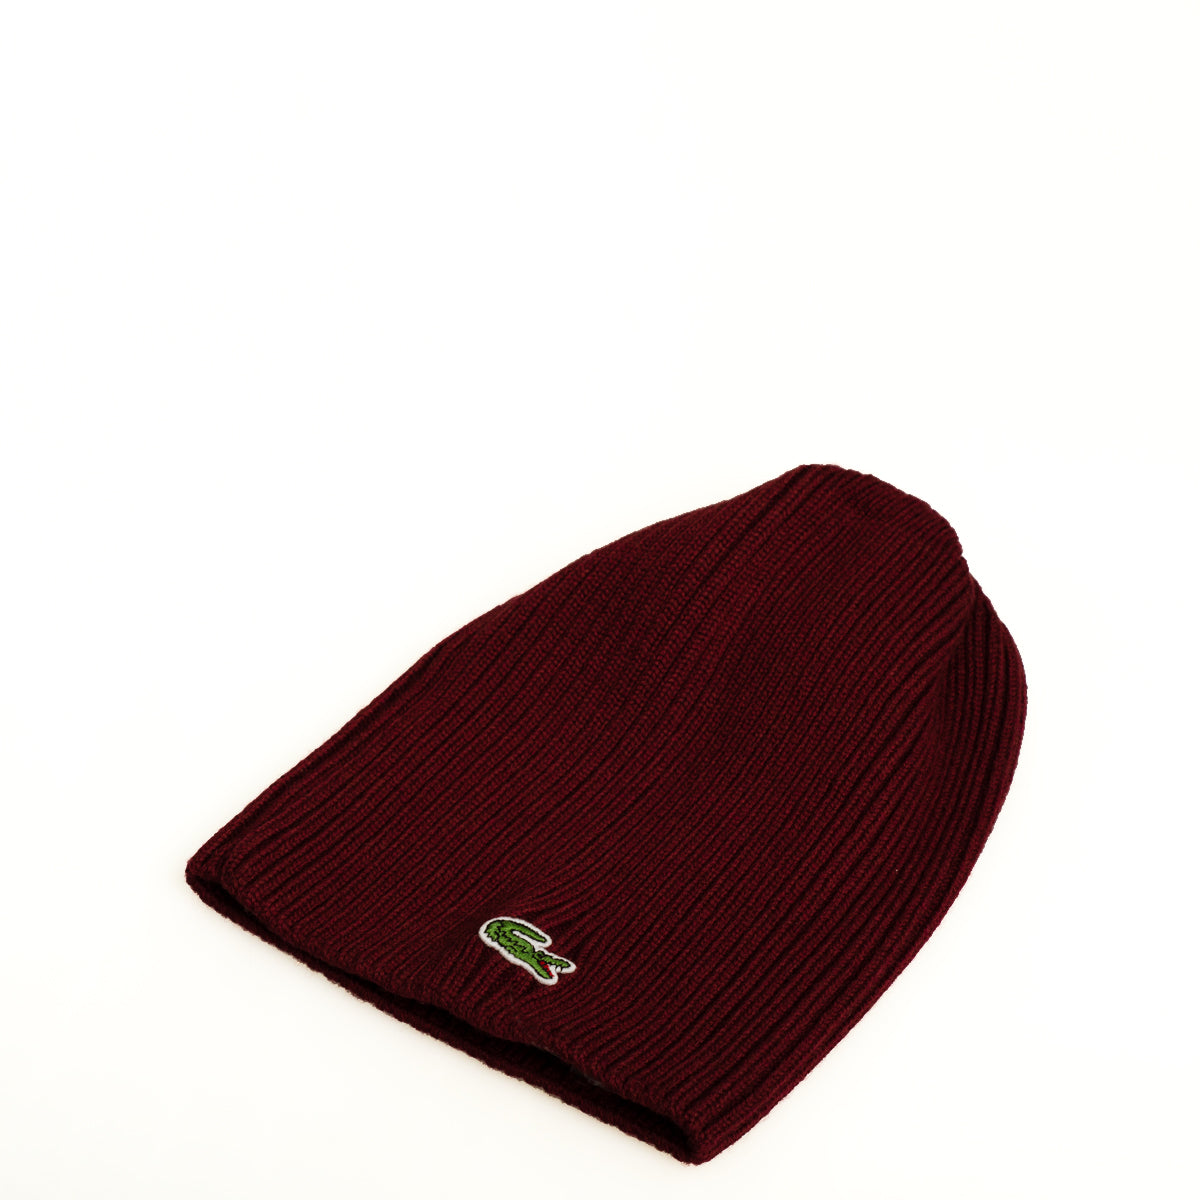 51538785ecd Men s Lacoste Ribbed Wool Beanie Bilberry RB350408L